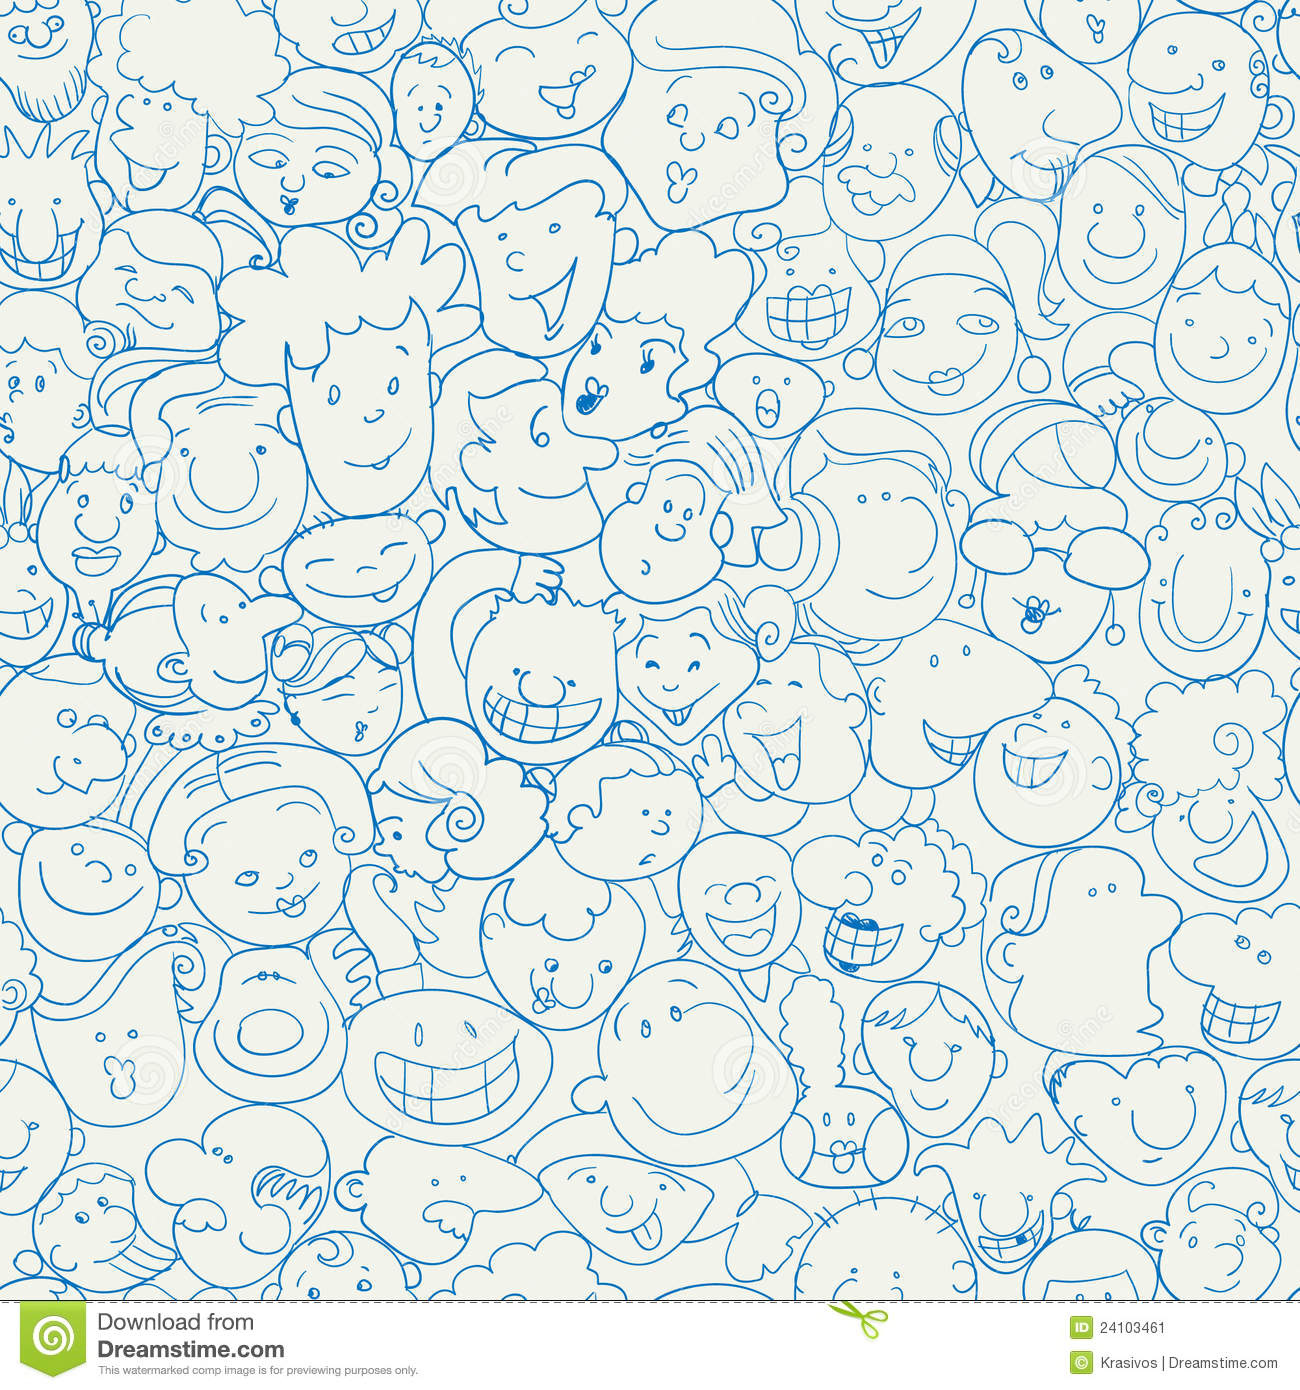 Doodle character cute bride template for print cartoon for Doodle characters